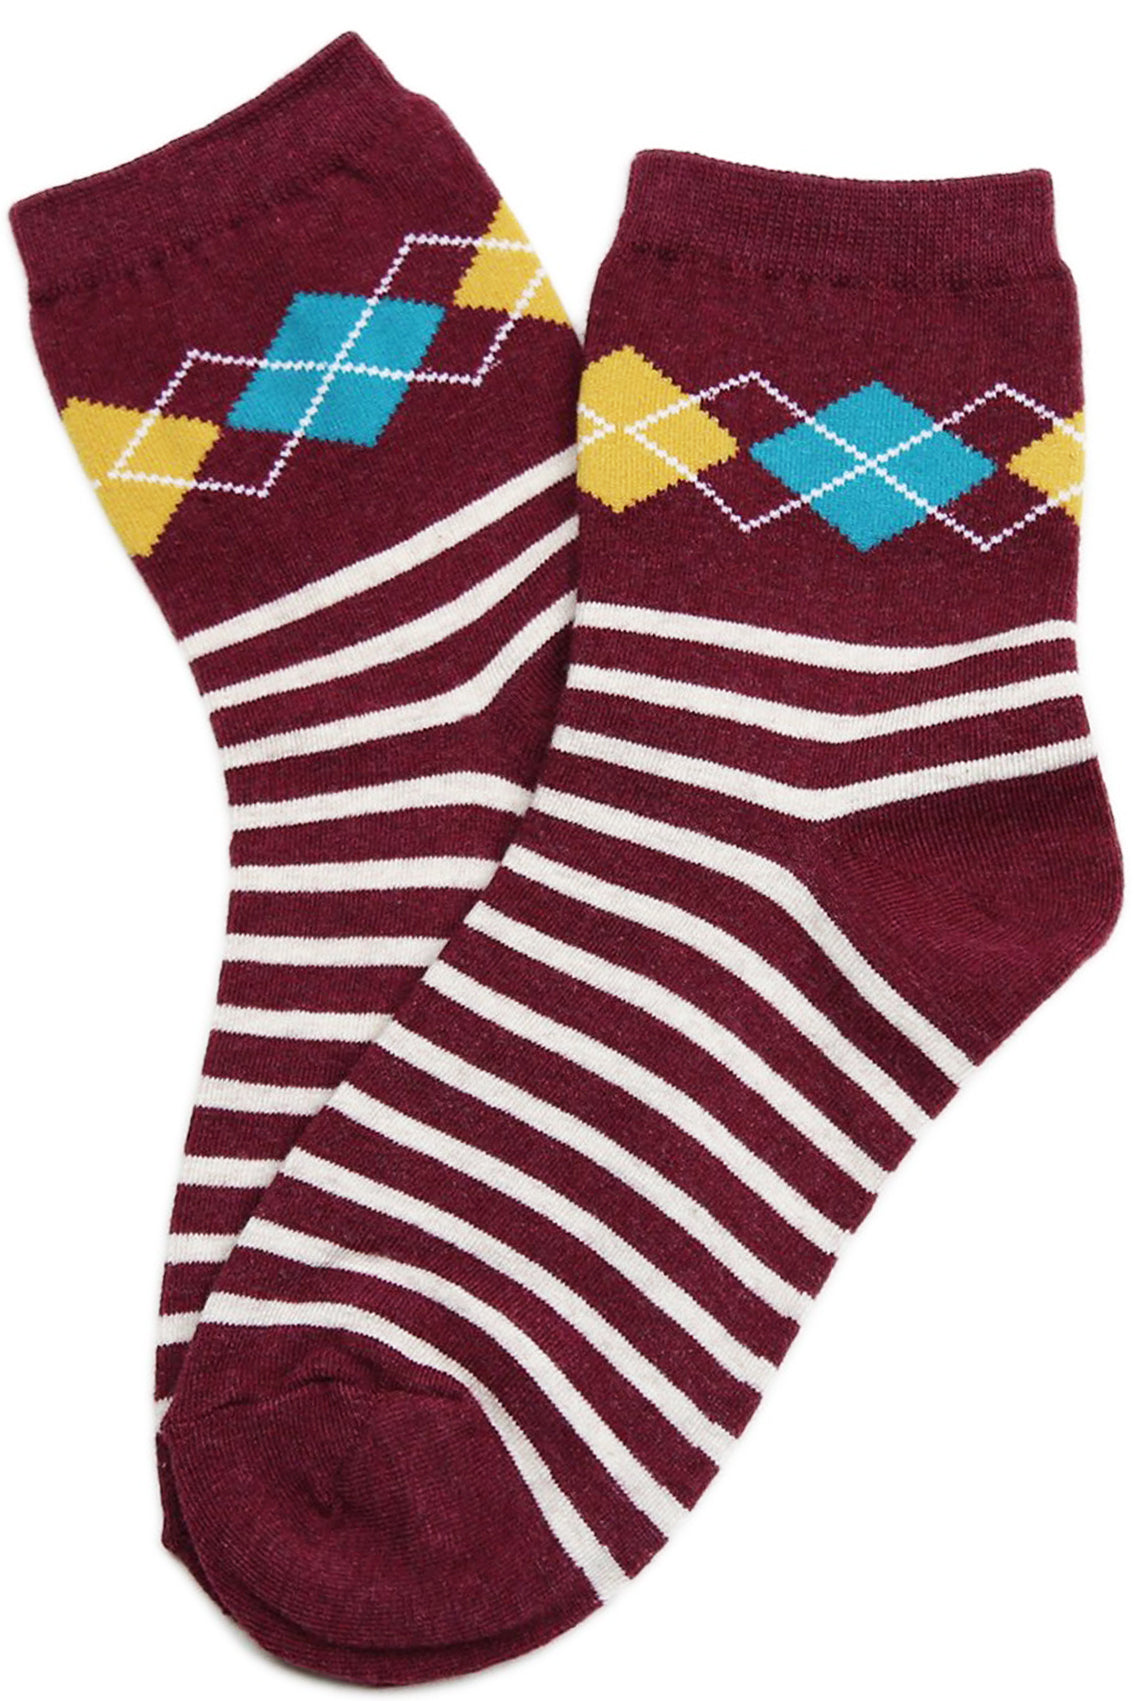 Dapper Cotton Socks Vino